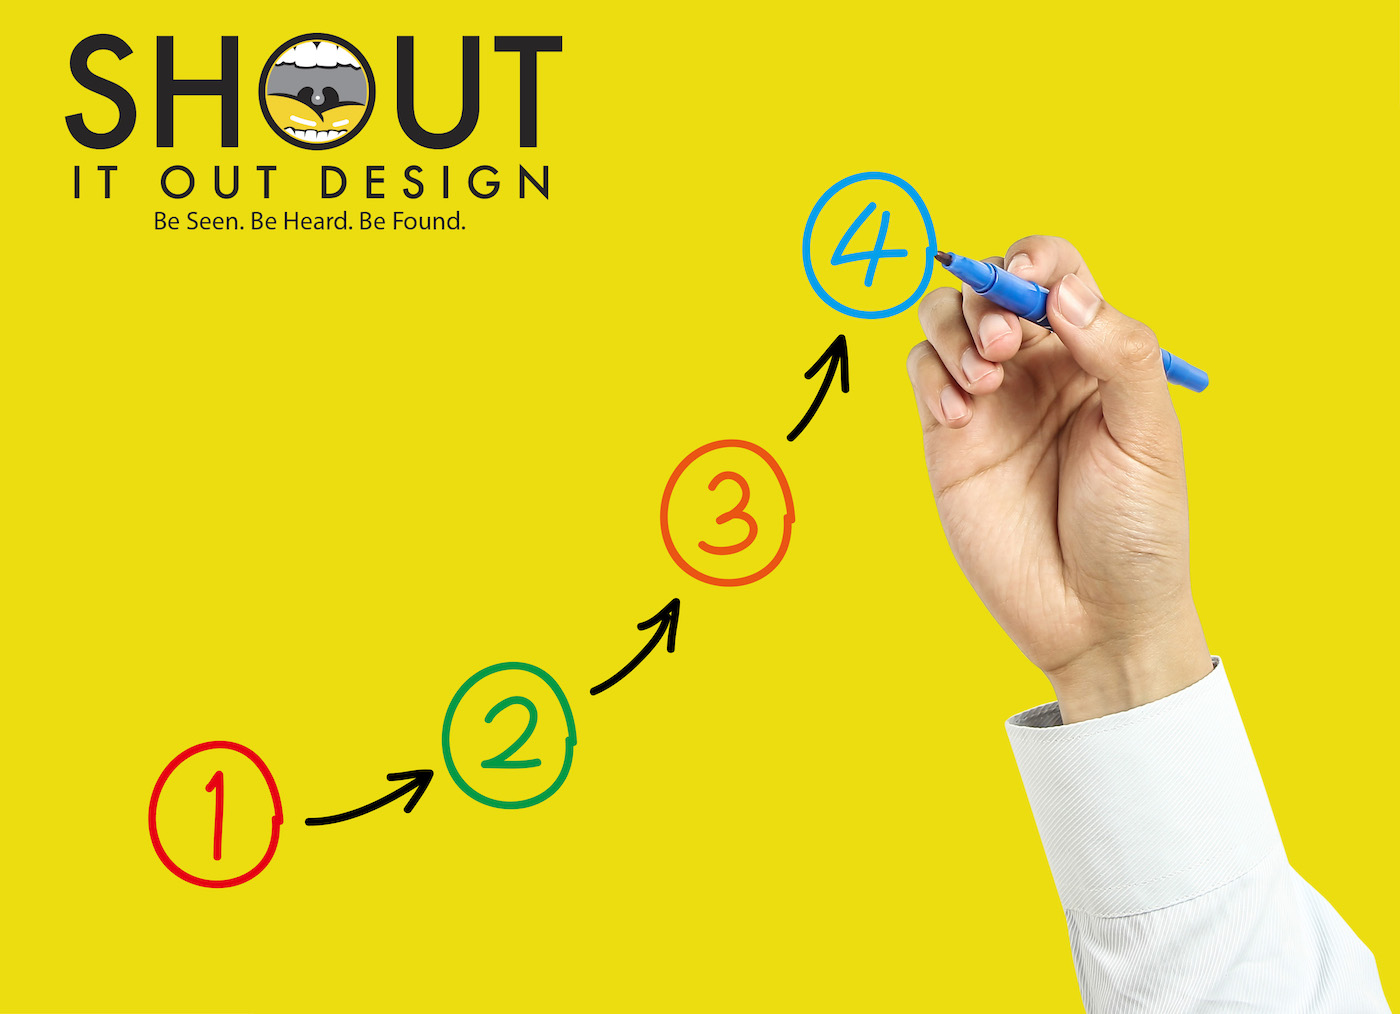 shout it out design